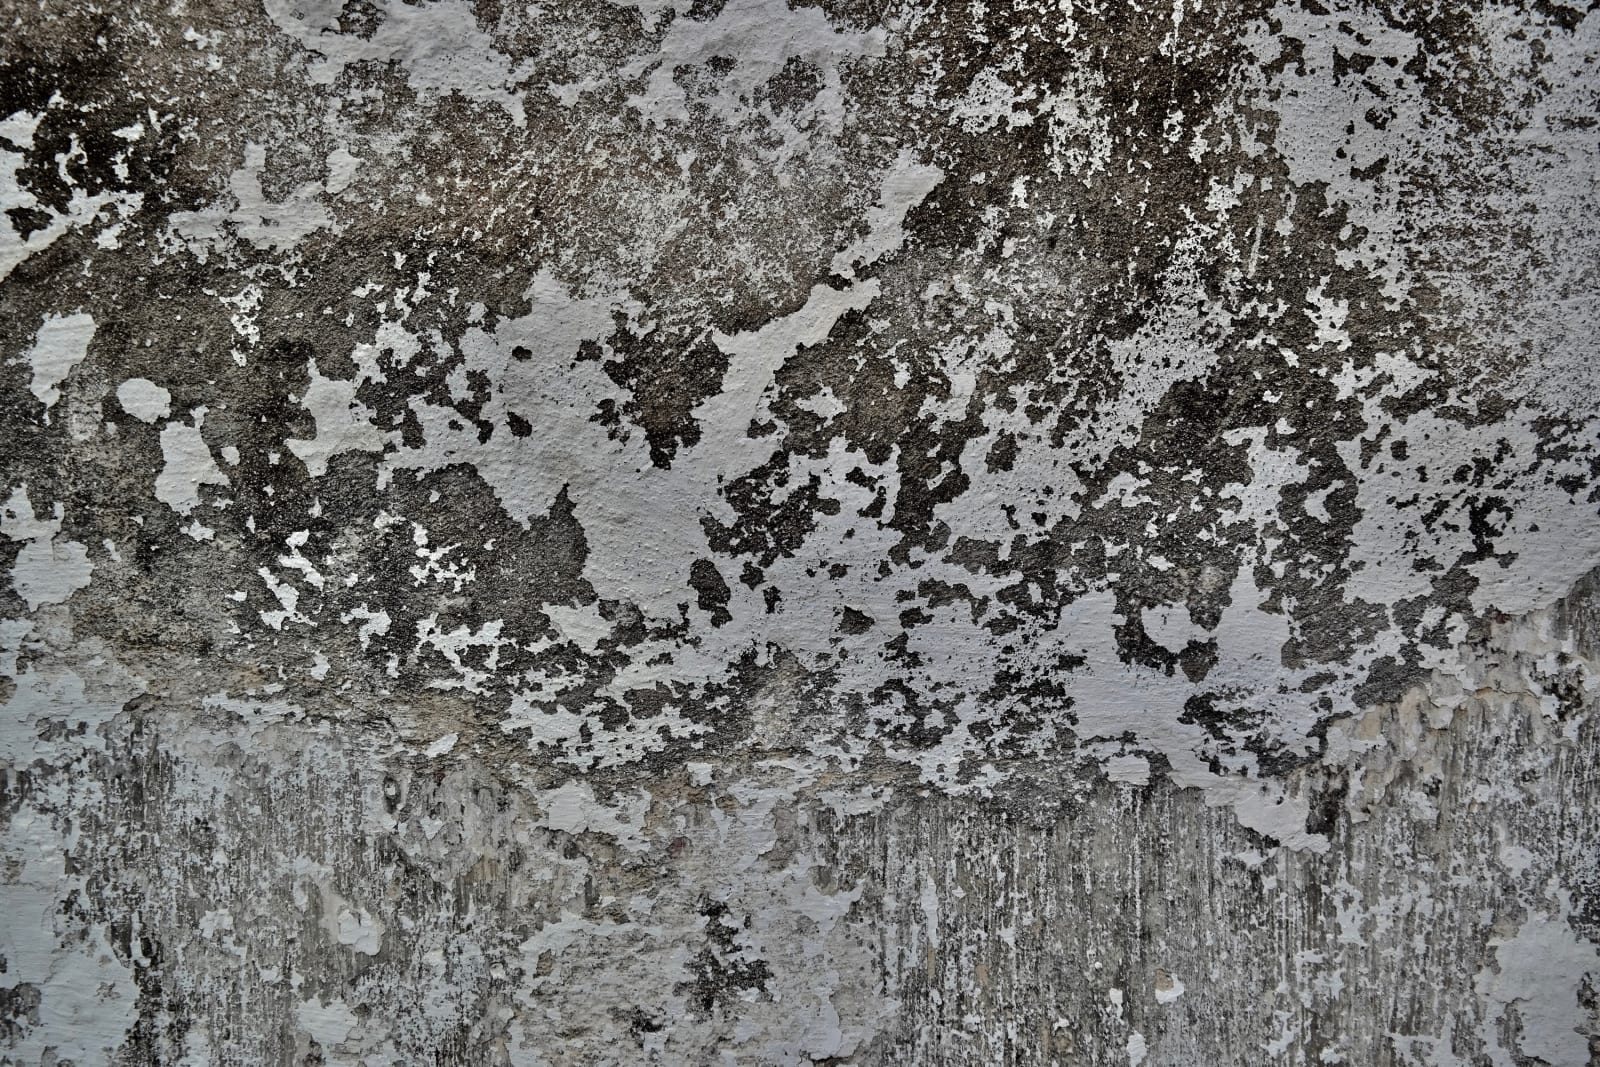 Latifah Iddriss Whispers in dying places iii (inside earth) 42 x 27.67 cm 14.8 x 21 cm Digital print